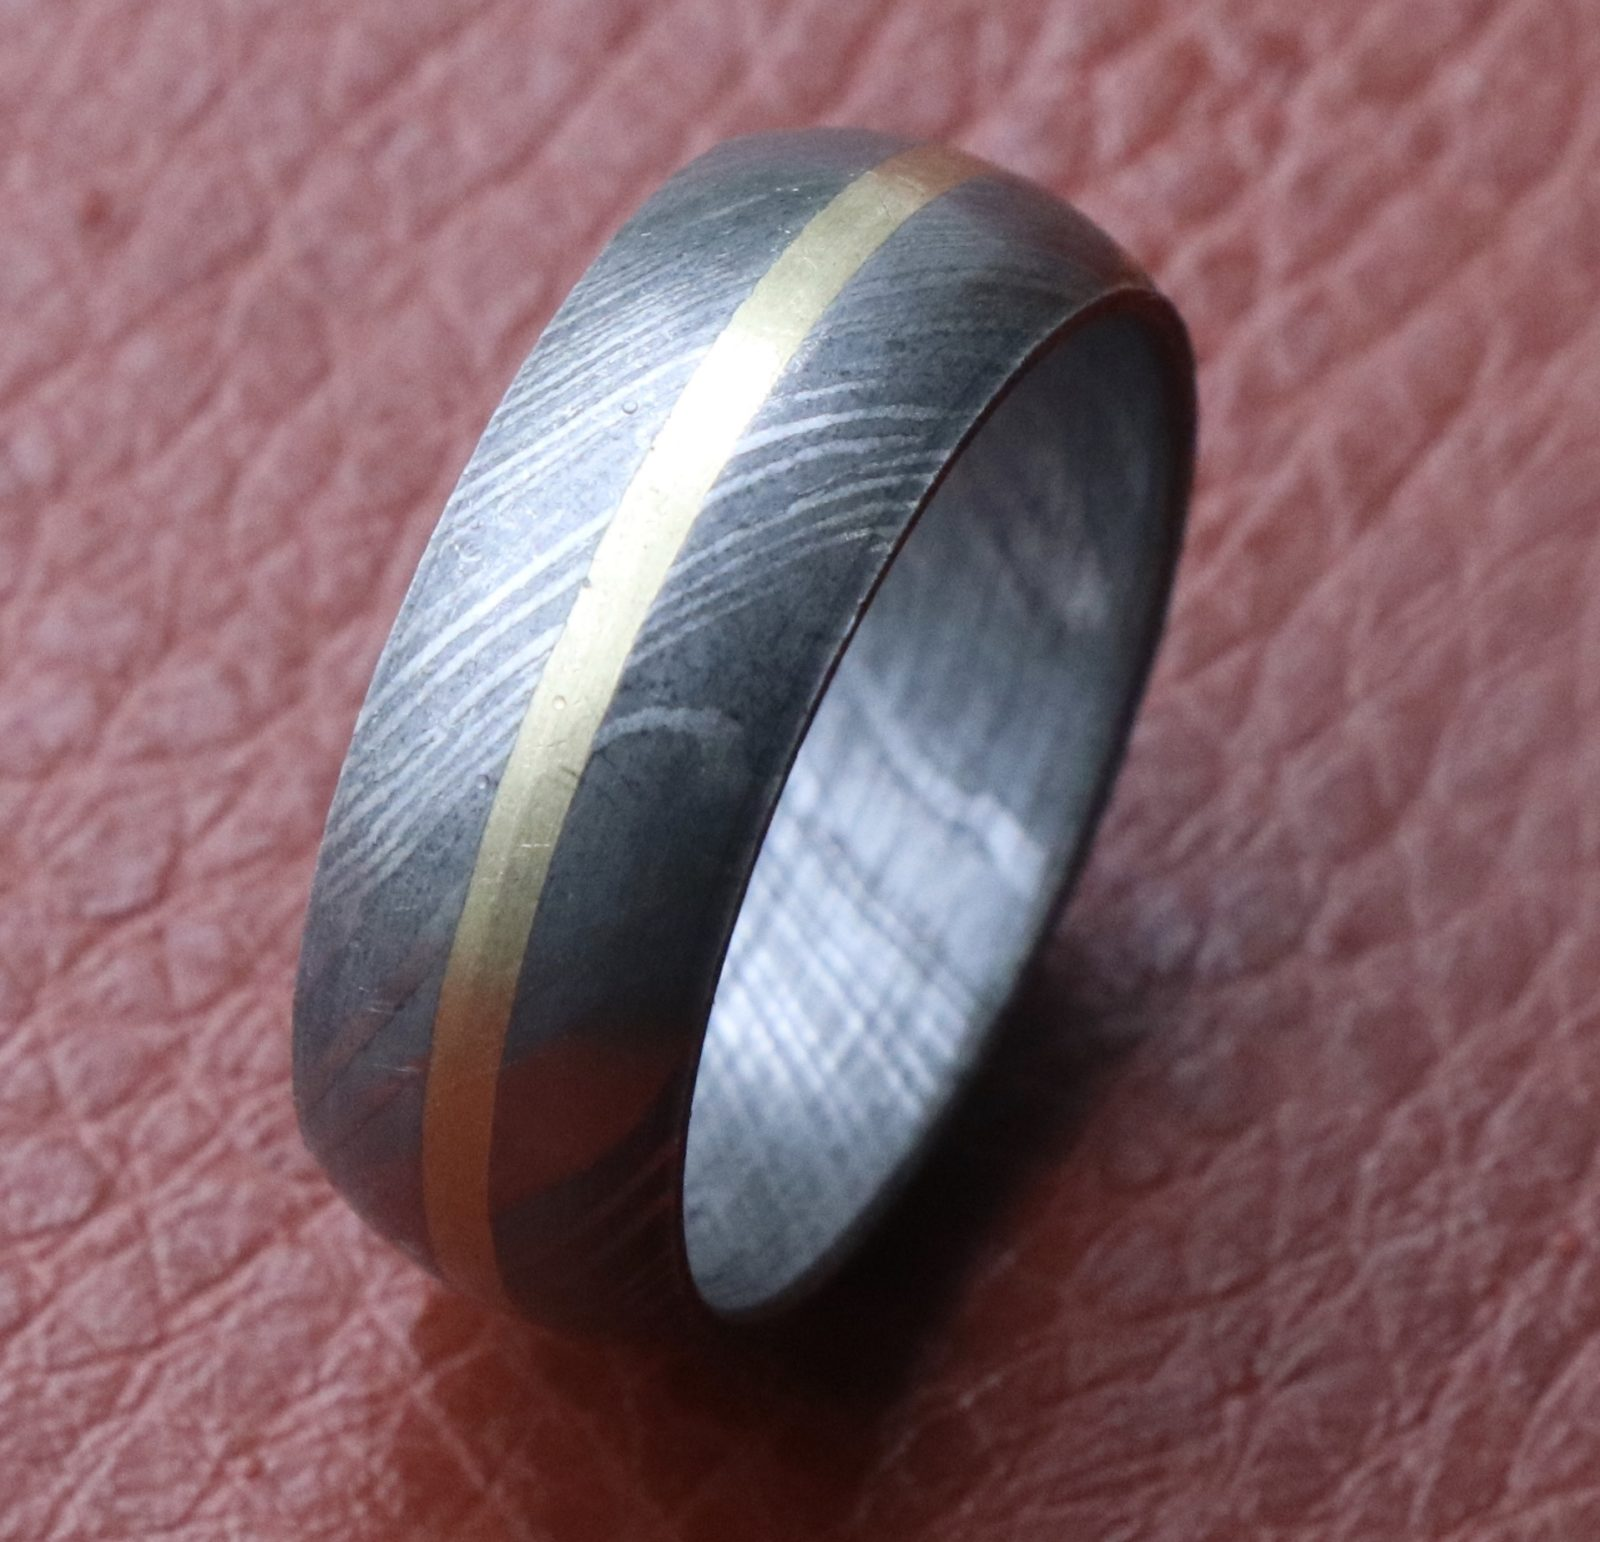 damascus steel rings pros and cons